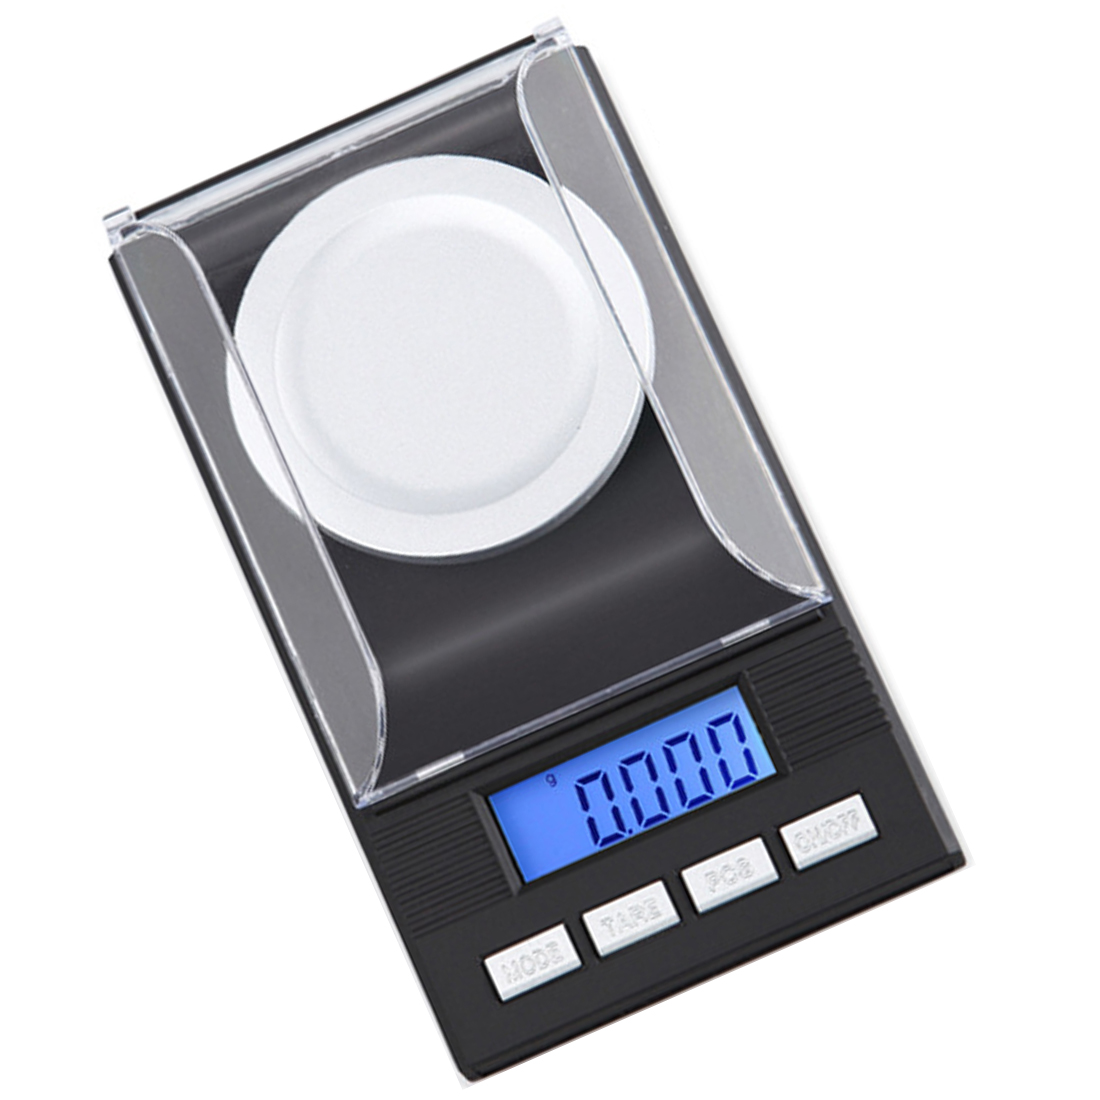 Portable Mini 20g/50g/100g/0.001g Digital Scale LCD Electronic Capacity Balance Diamond Jewelry High Precision Pocket Scale цена